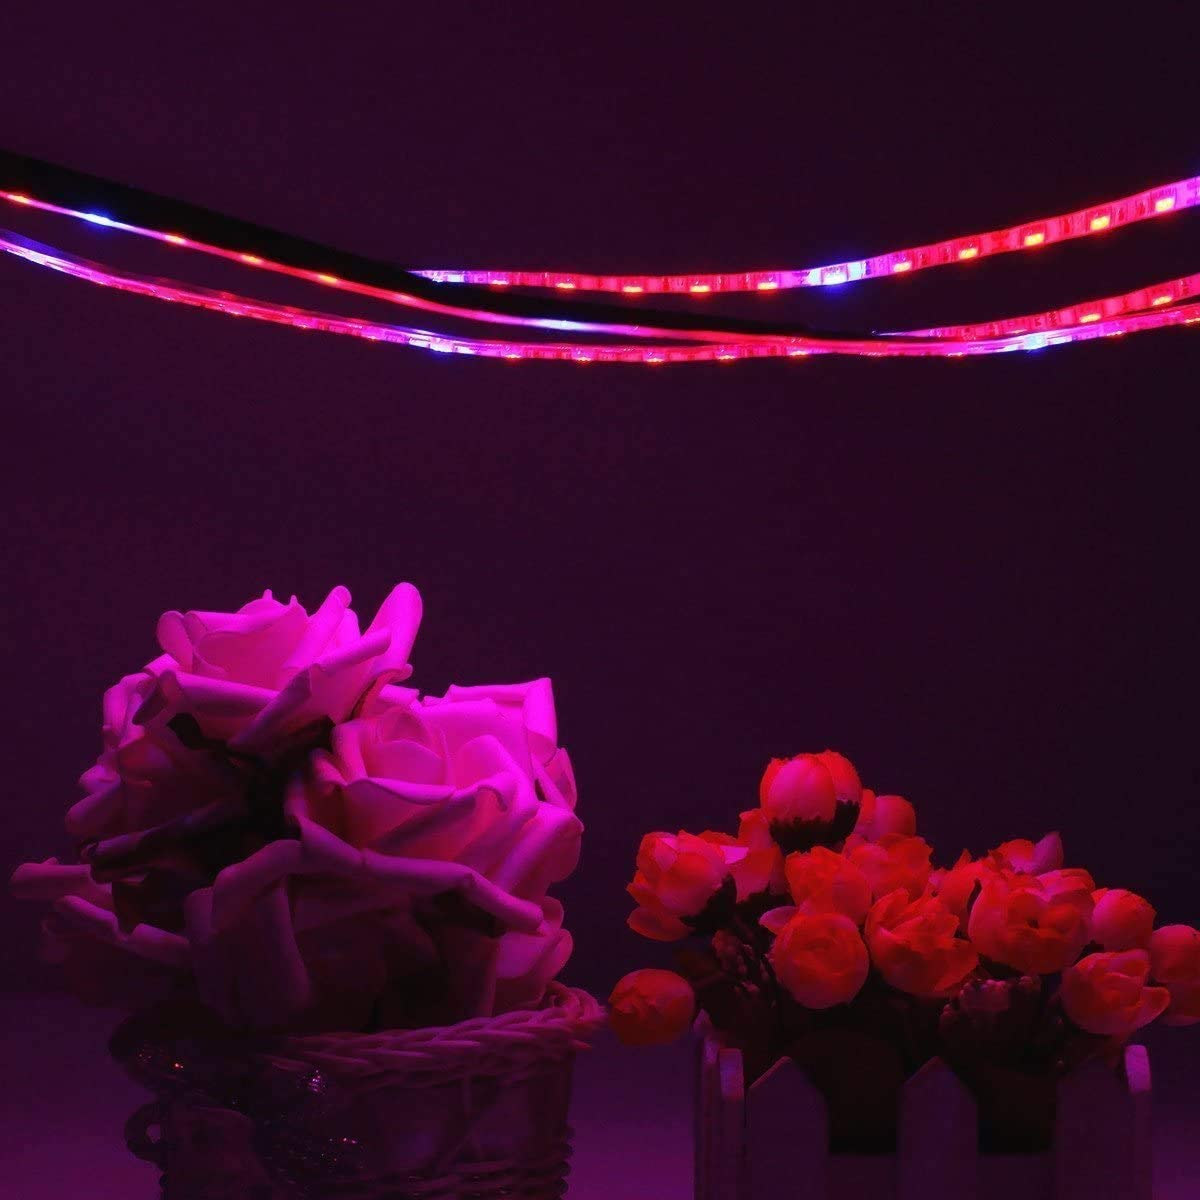 Details about  /BEST USB LED Grow Light Strip Full Spectrum Strip For Indoor Growing Plant R7P4